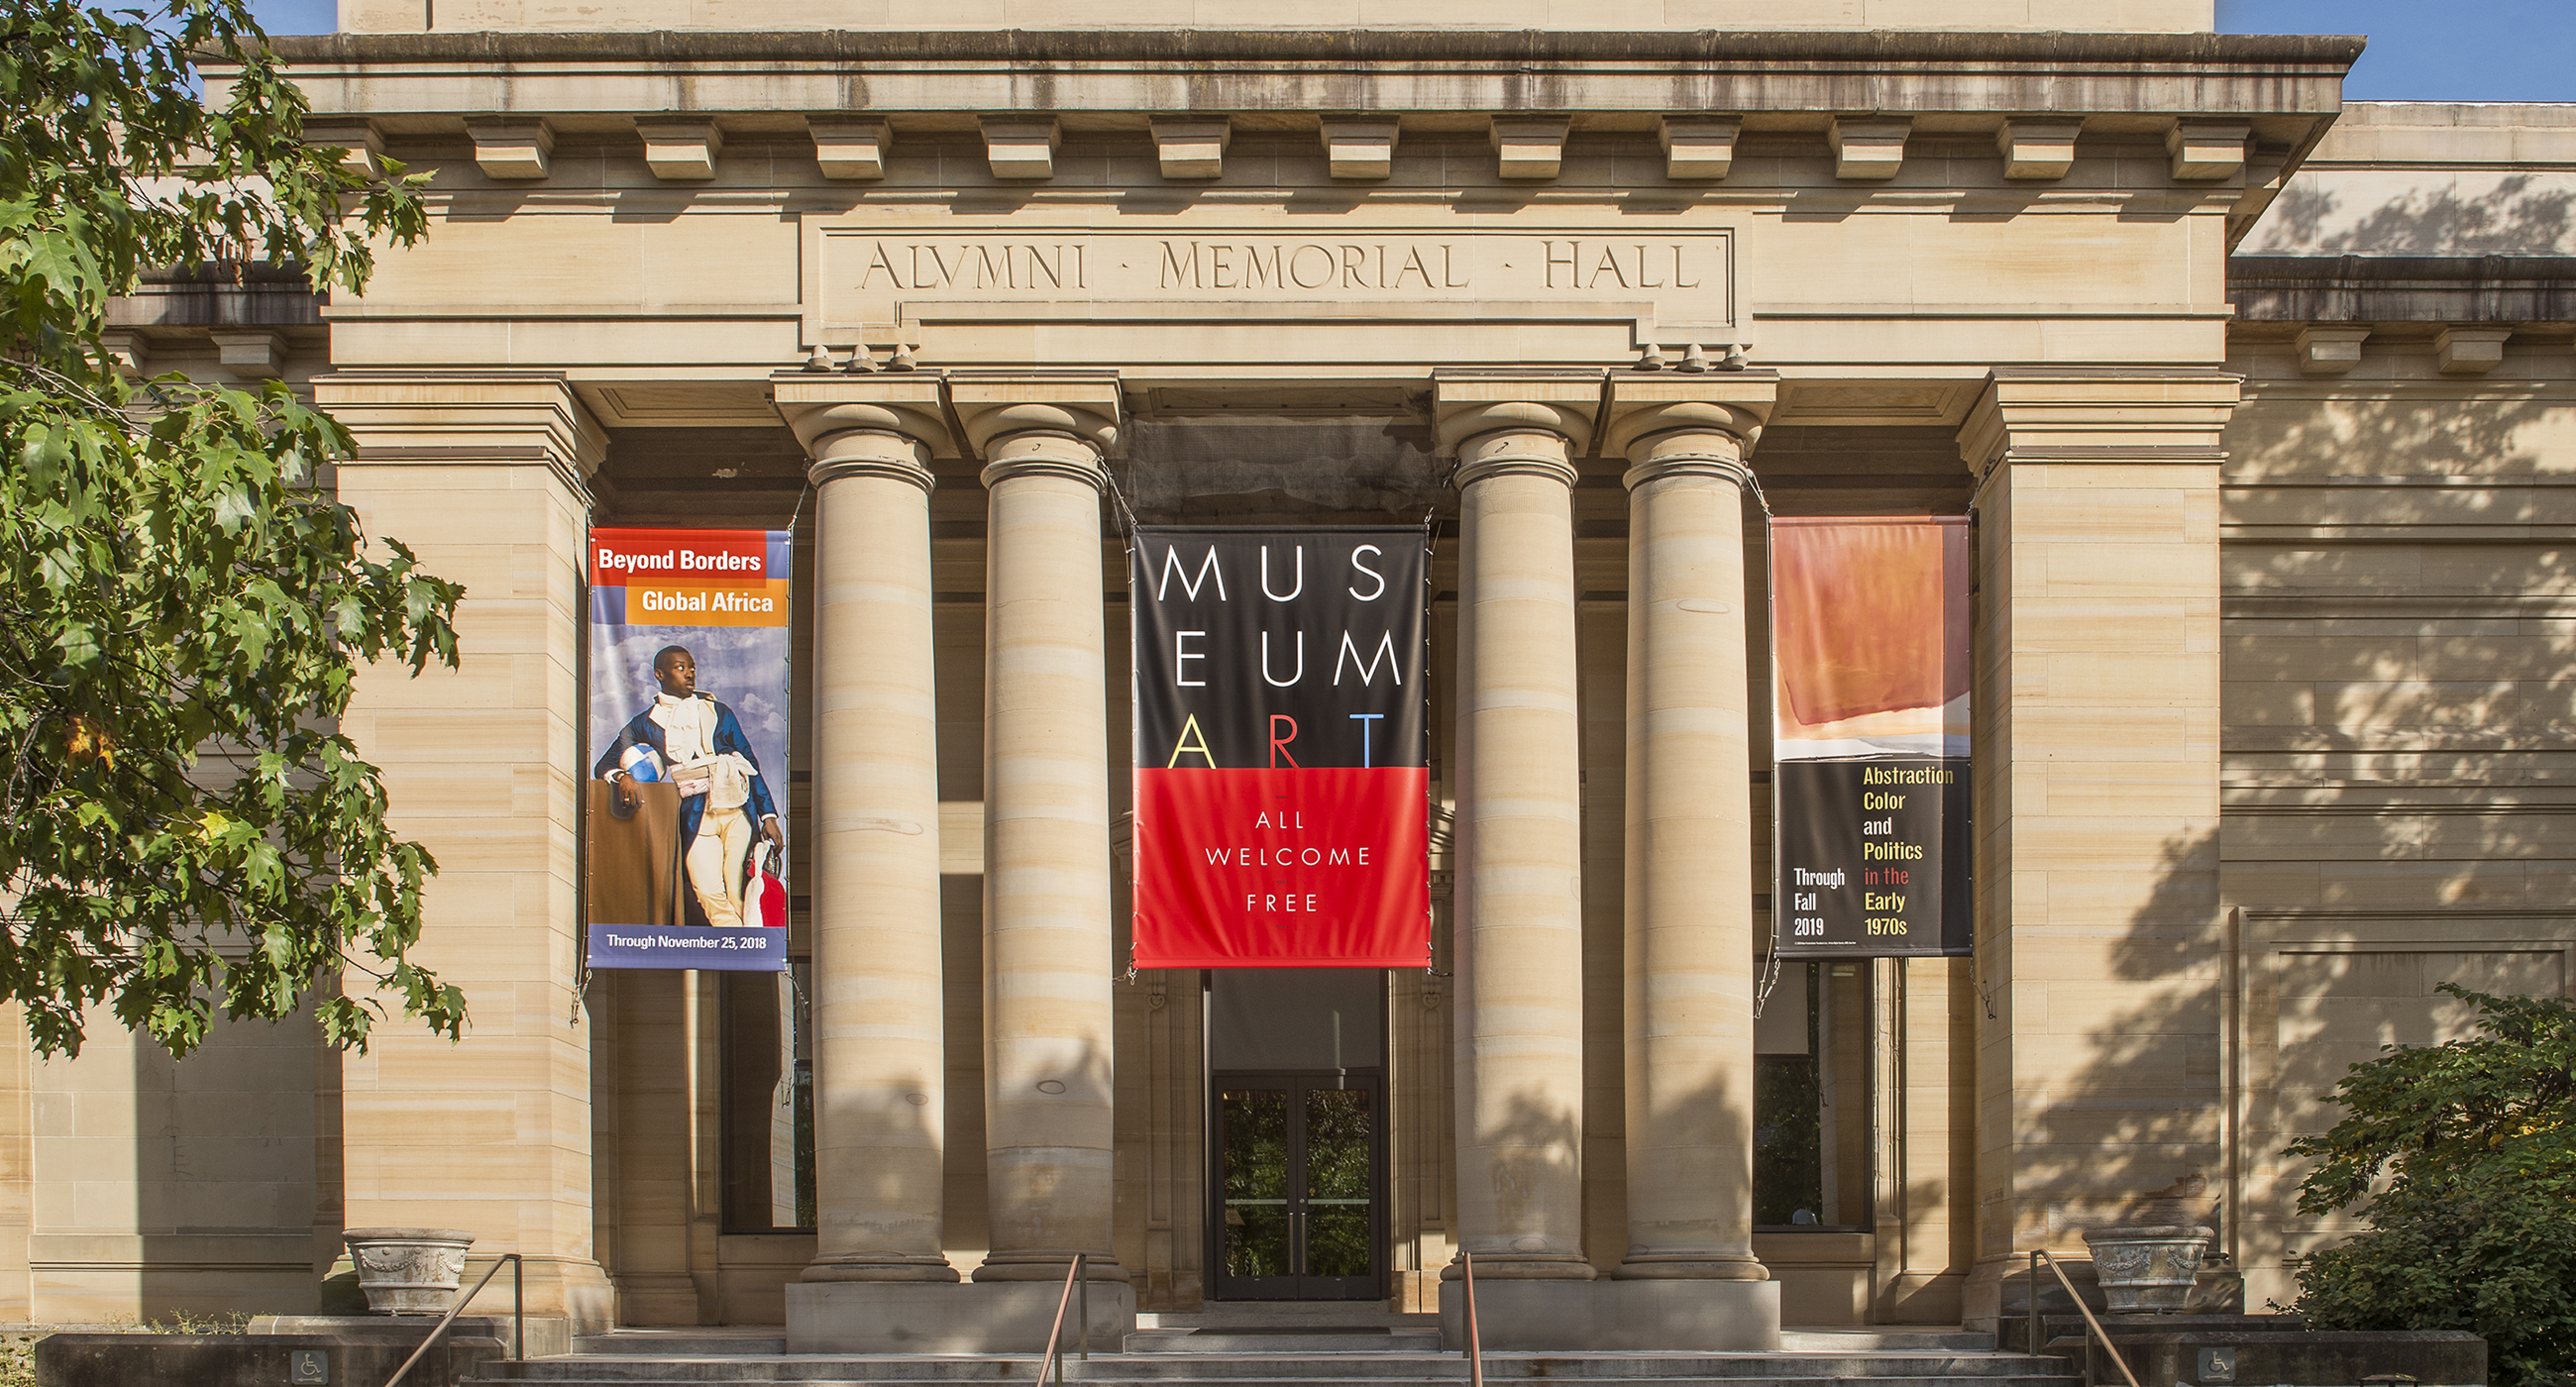 Image of UMMA entrance with banner above that reads: All, Welcome, Free